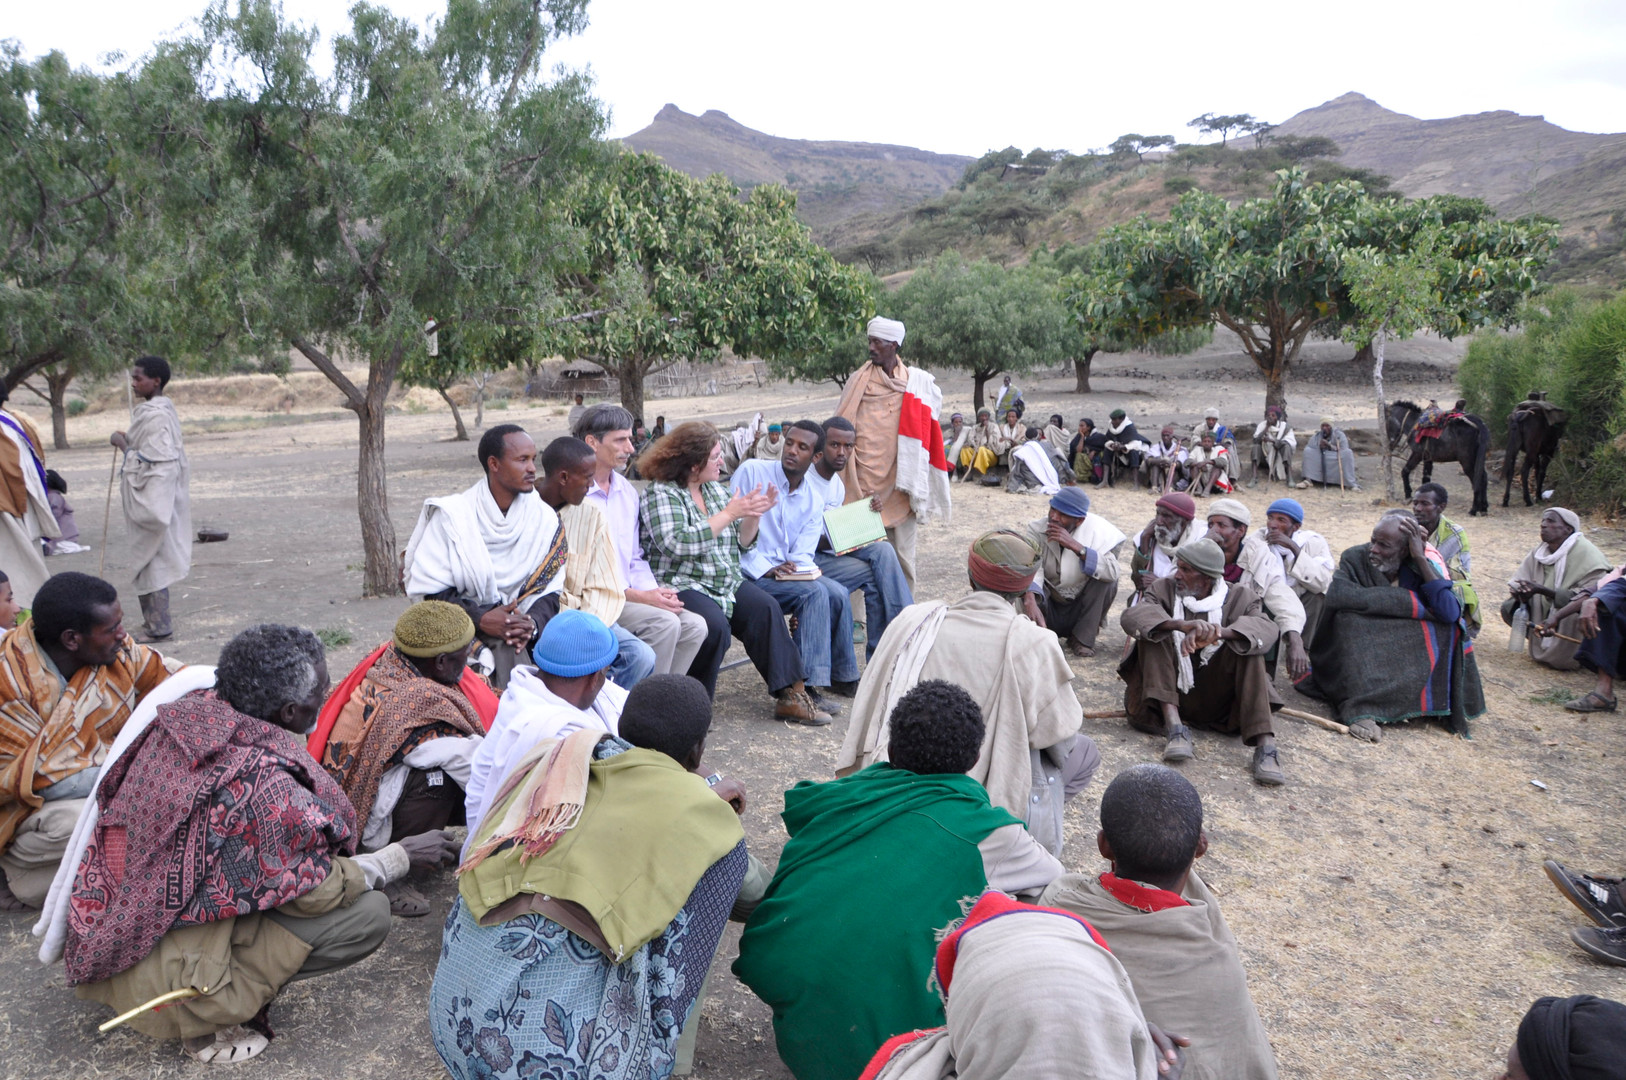 Tania, Chris and Habtamu discussing the project with the local community at Gännätä Maryam, 2009